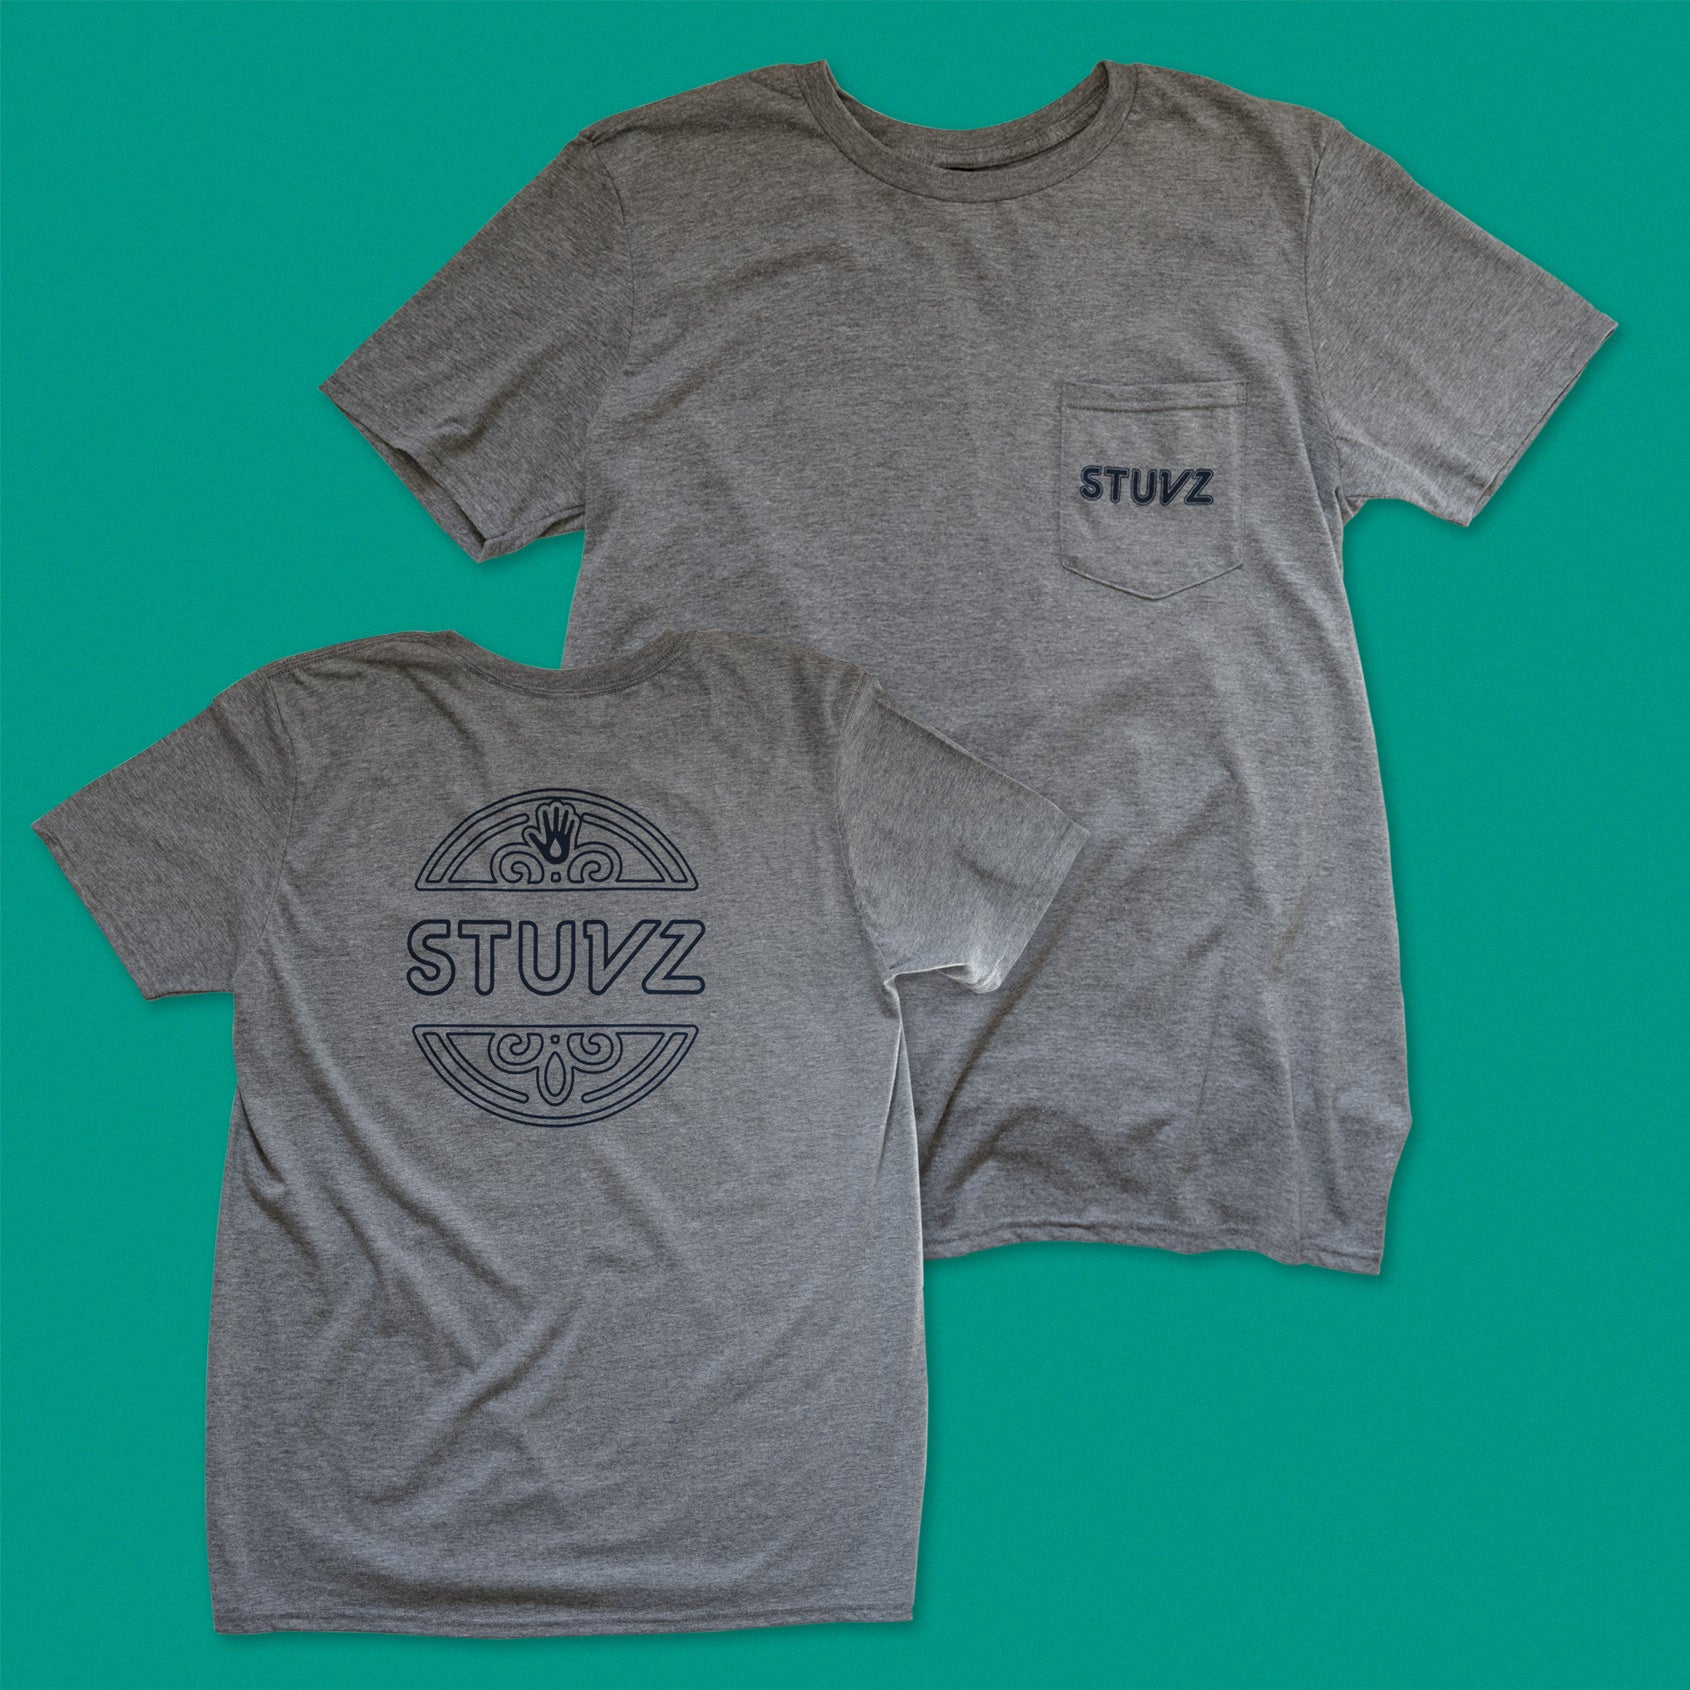 Stuvz Pocket Tee